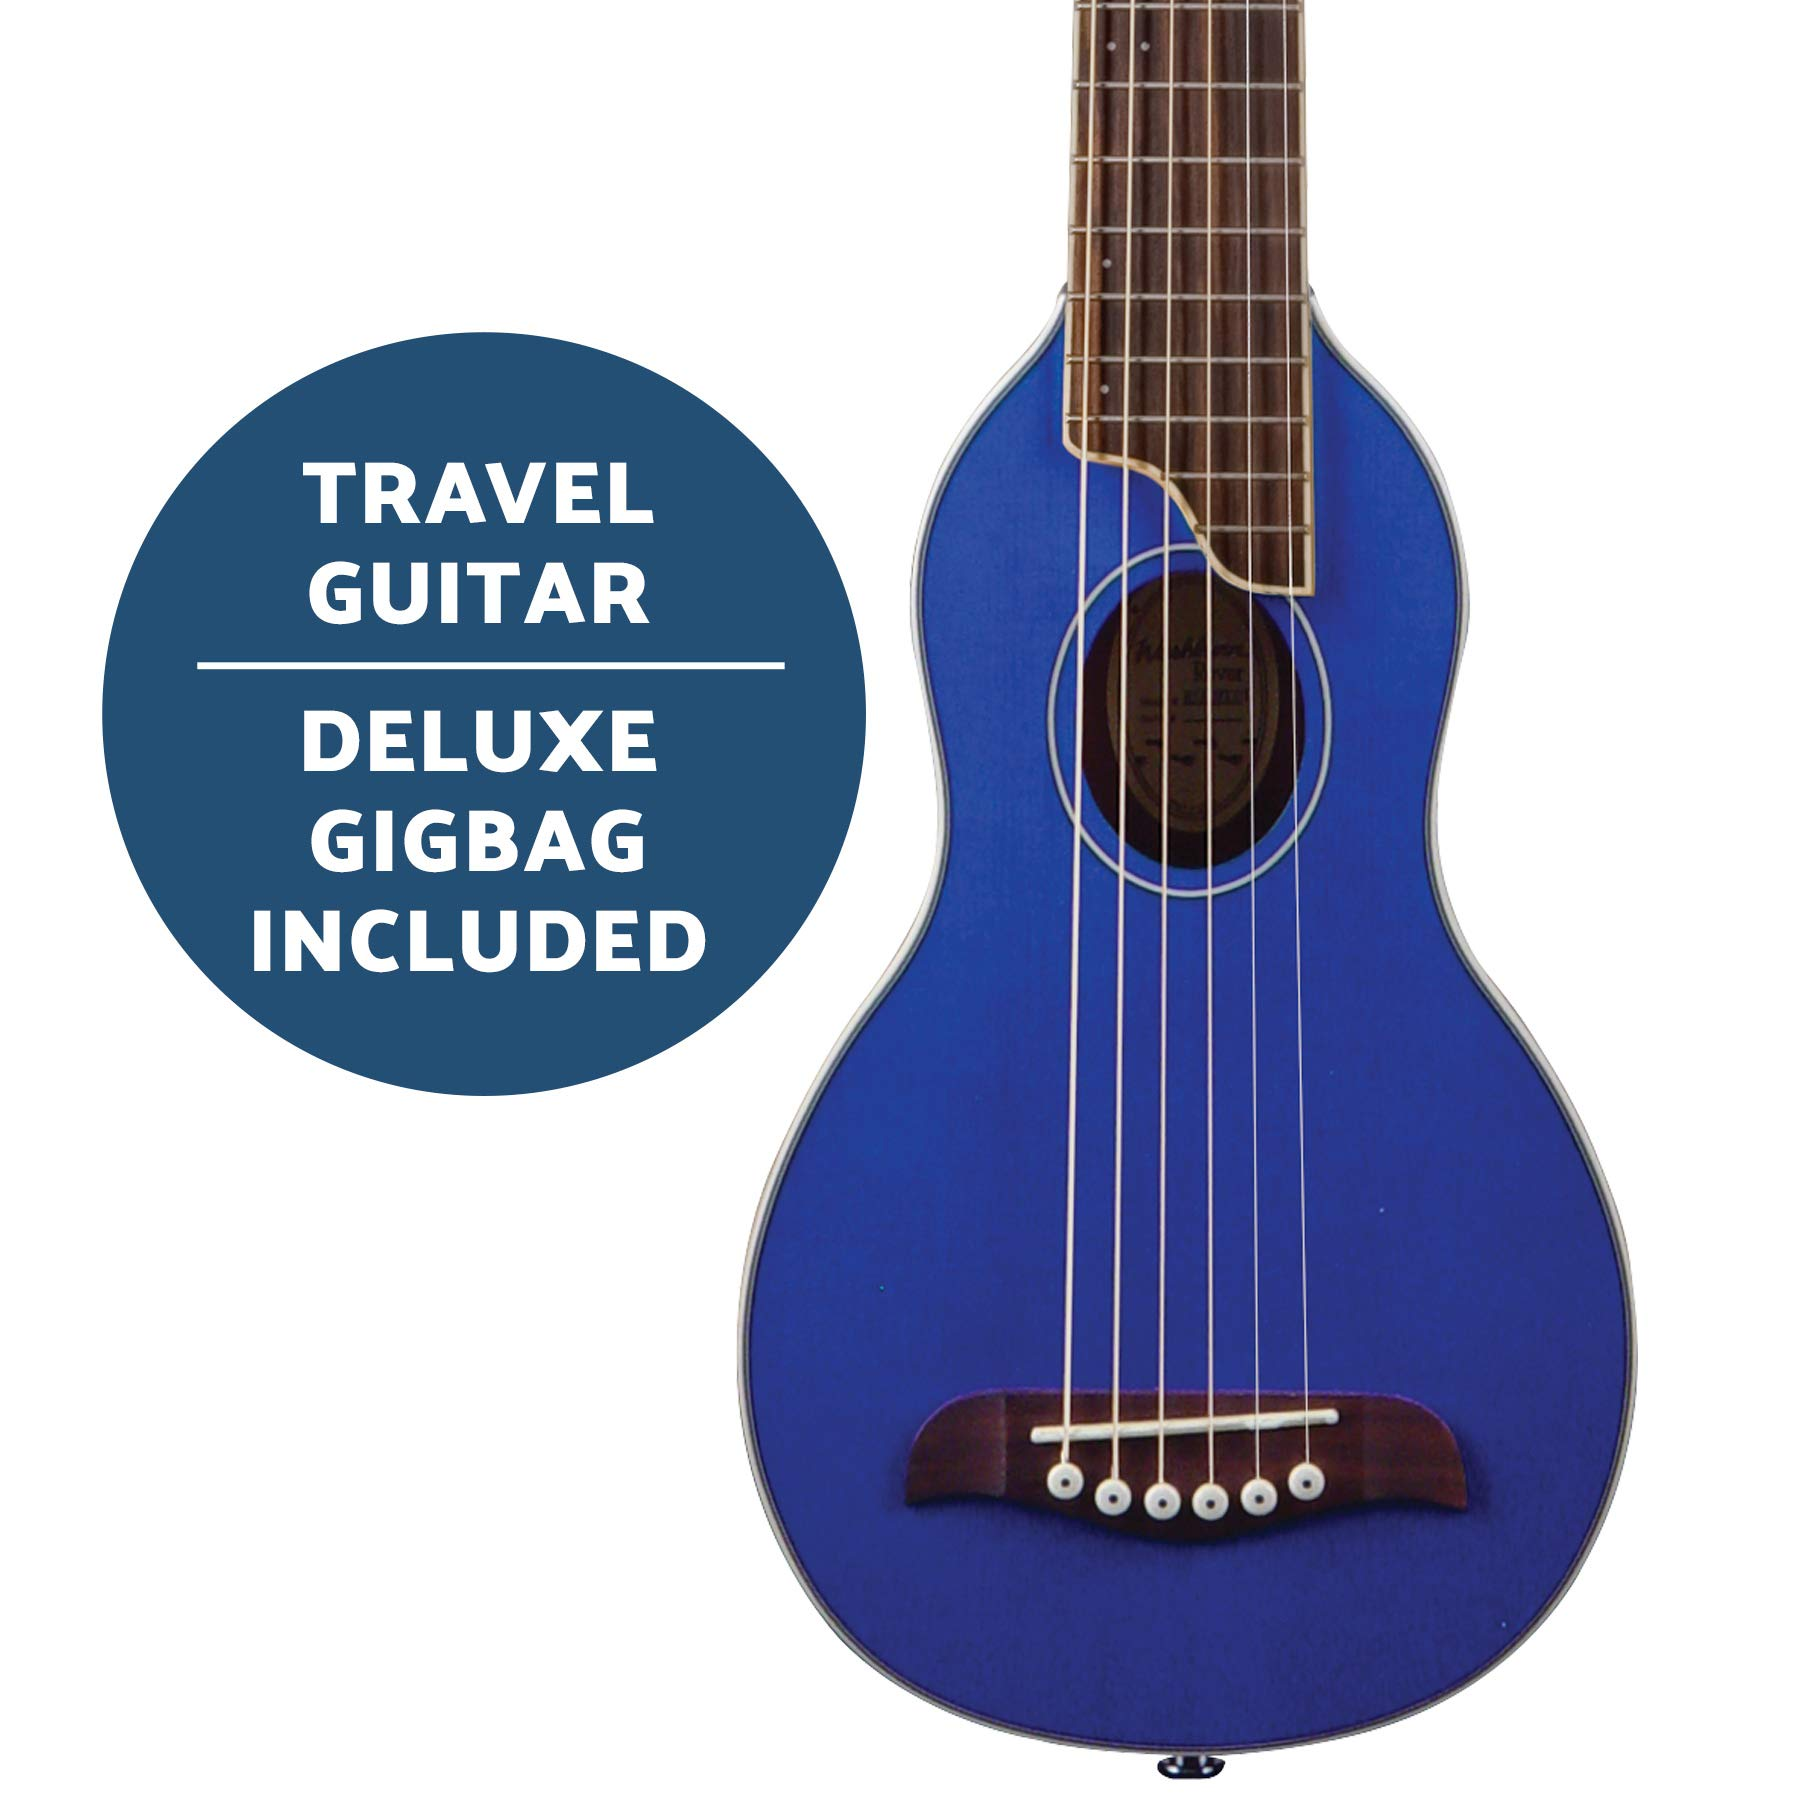 Washburn Rover 6 String Acoustic Guitar Pack, Right, Trans Blue, Full (RO10STBLK-A) by Washburn